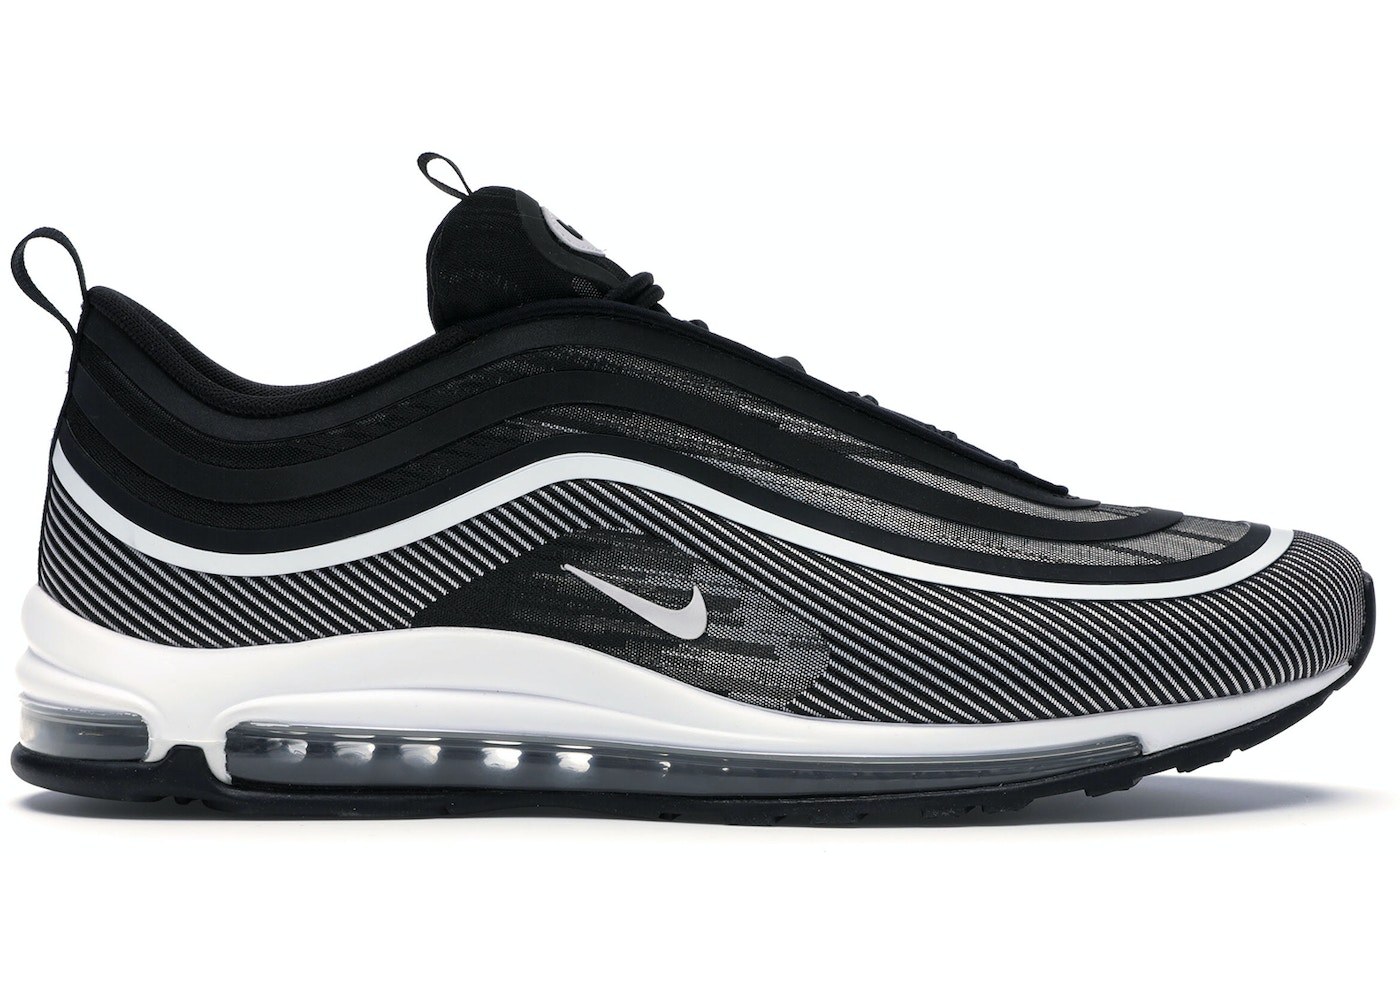 premium selection 98381 5e9fb Sell. or Ask. Size: 12. View All Bids. Air Max 97 Ultra 17 Black White